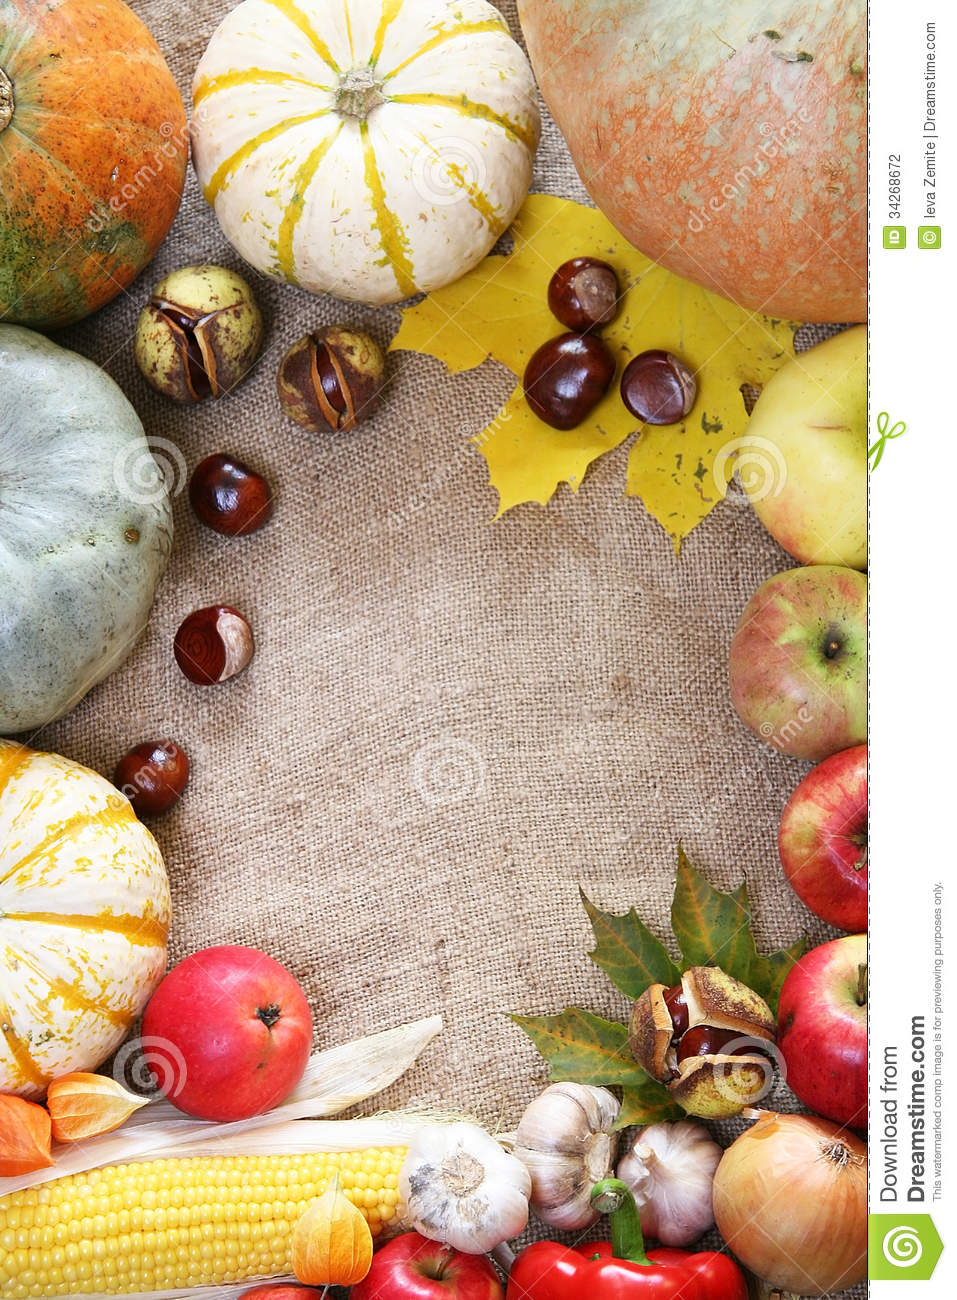 Bsktdsq Rw Zoom together with  furthermore Tree Potted Small Purple Flowers Looks Beautiful Fresh likewise White Fall Pumpkin Decoration moreover . on fruits and vegetables basket